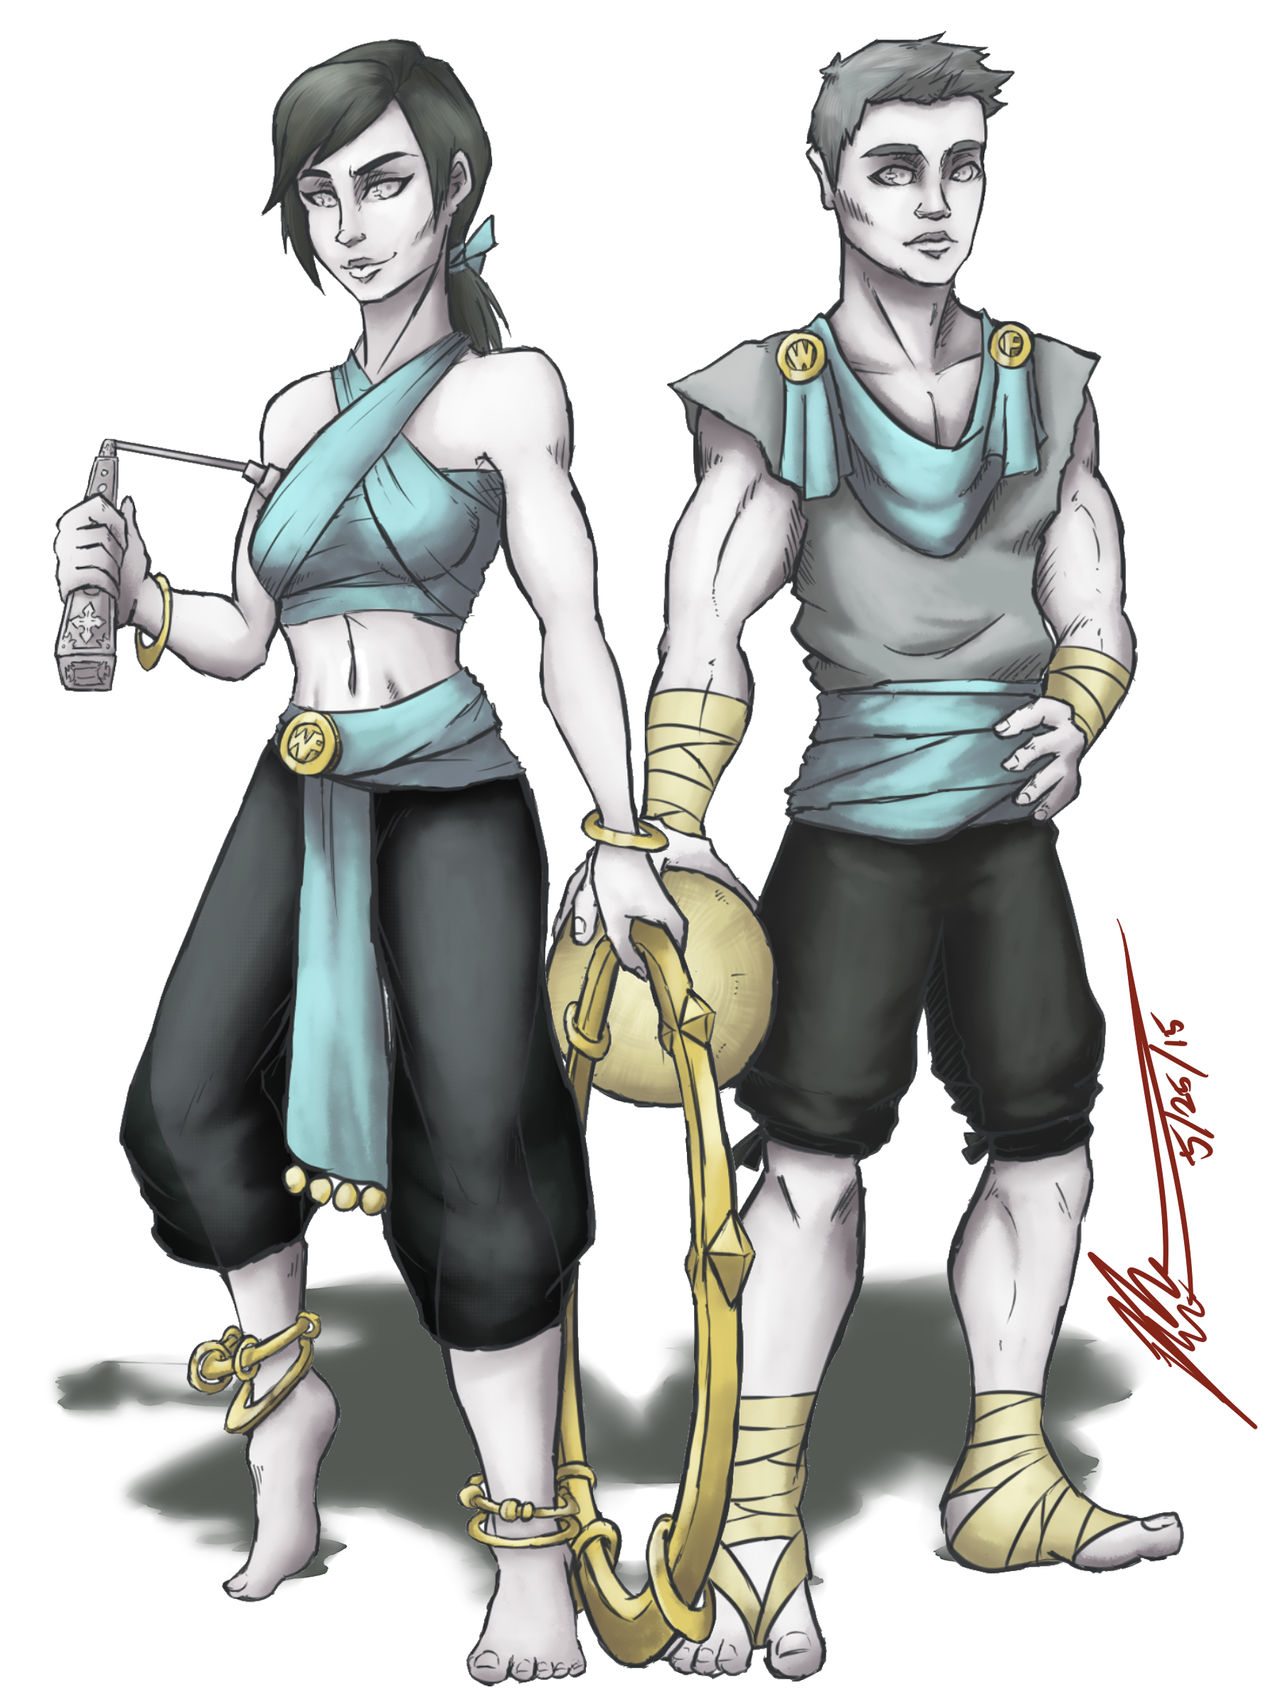 Wii Fit Trainer Olympian By Coronaditempesta On Deviantart